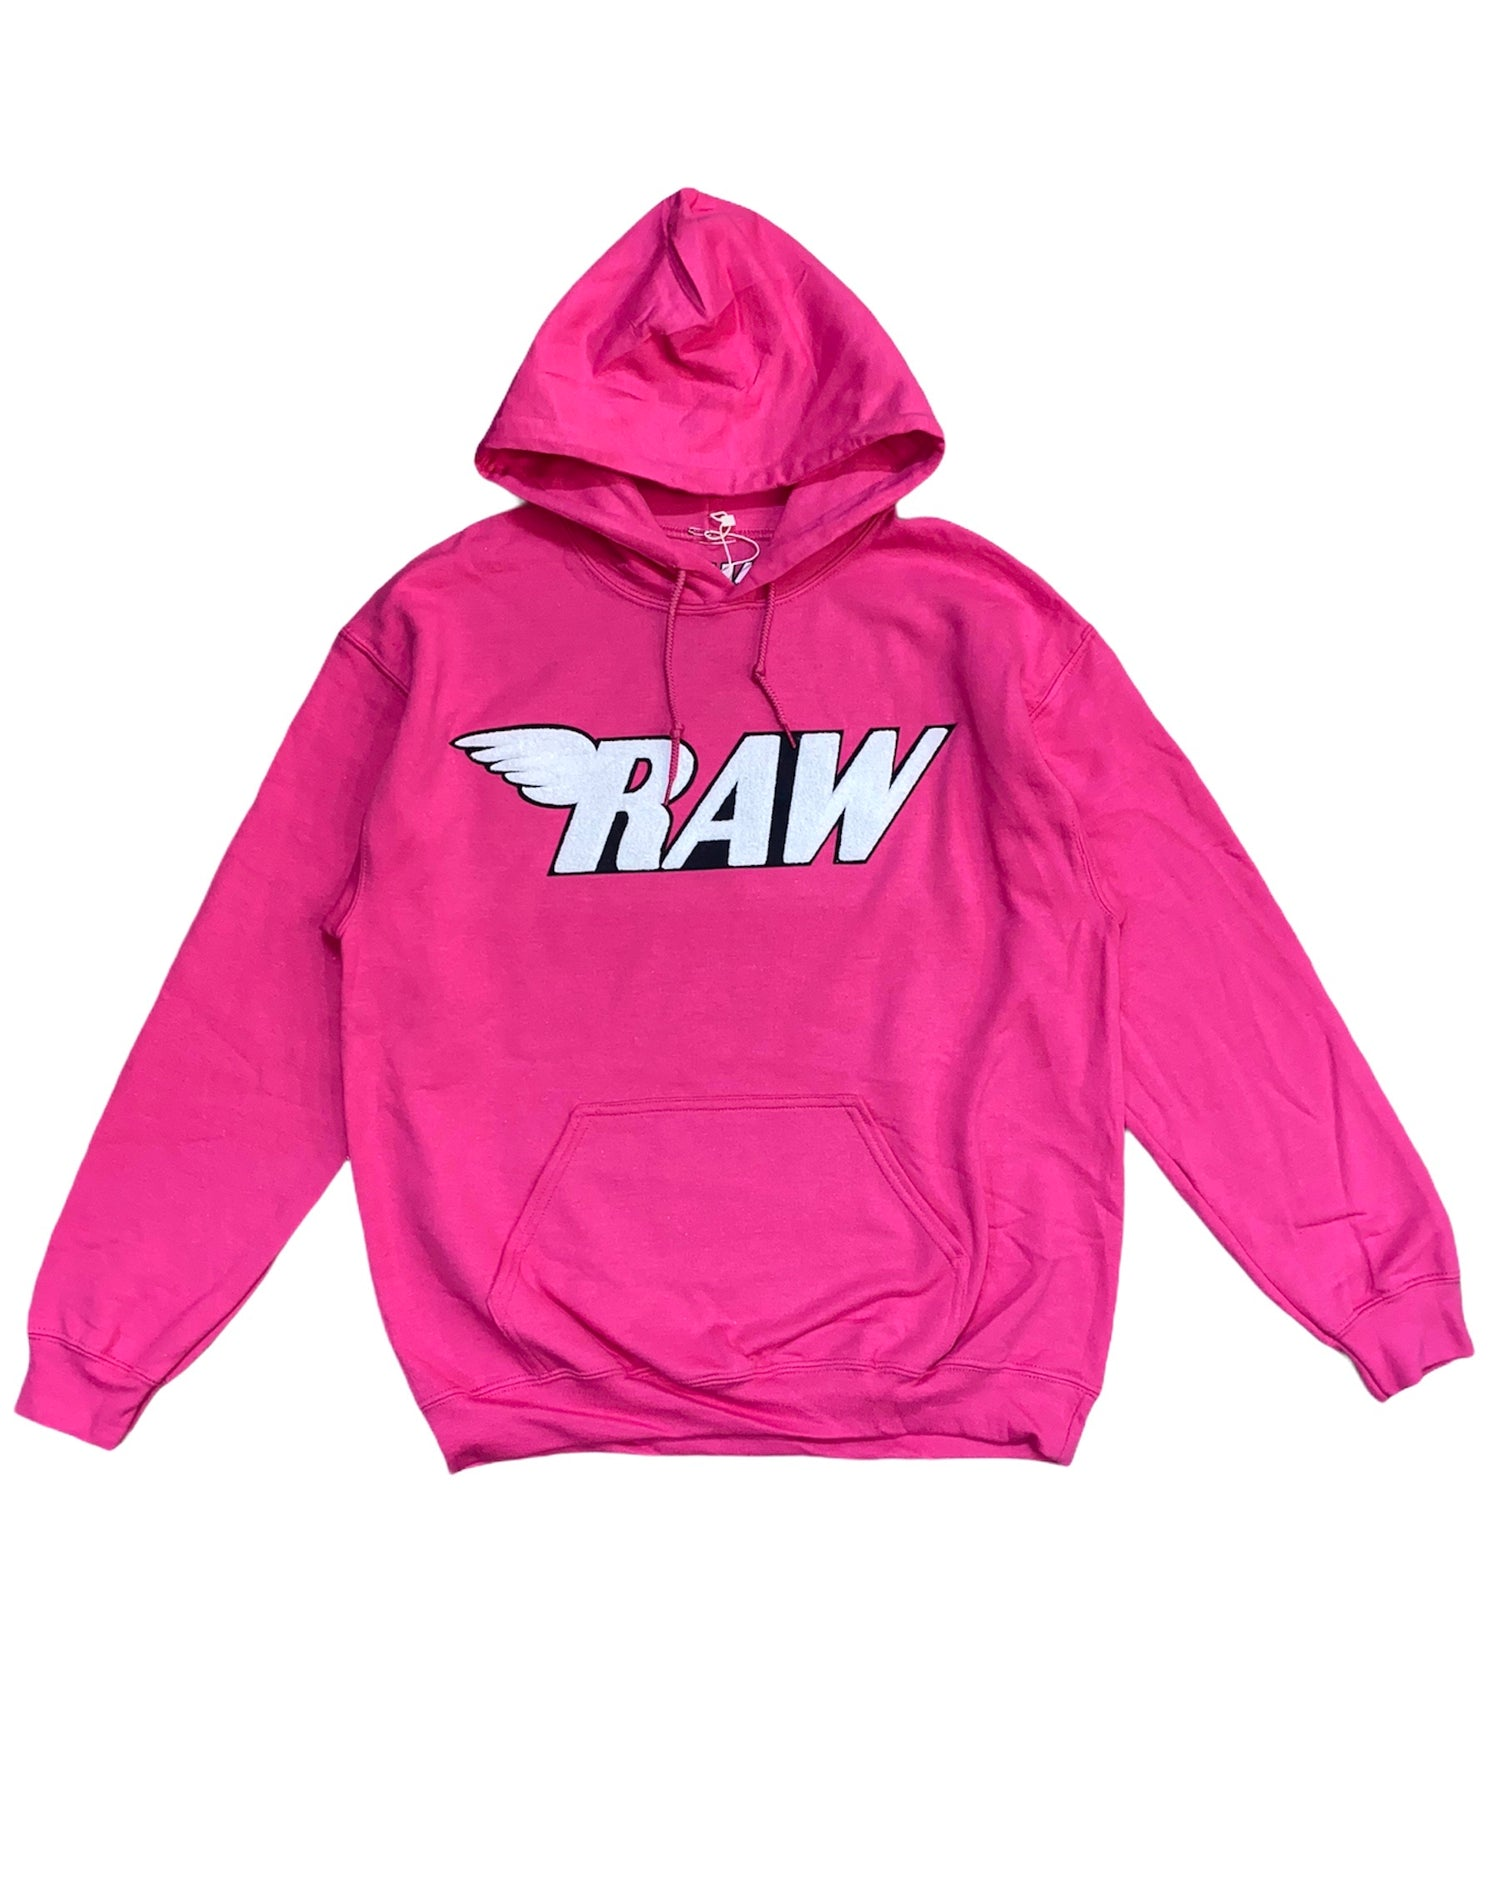 Rawyalty Hoodie - Raw - Pink And White